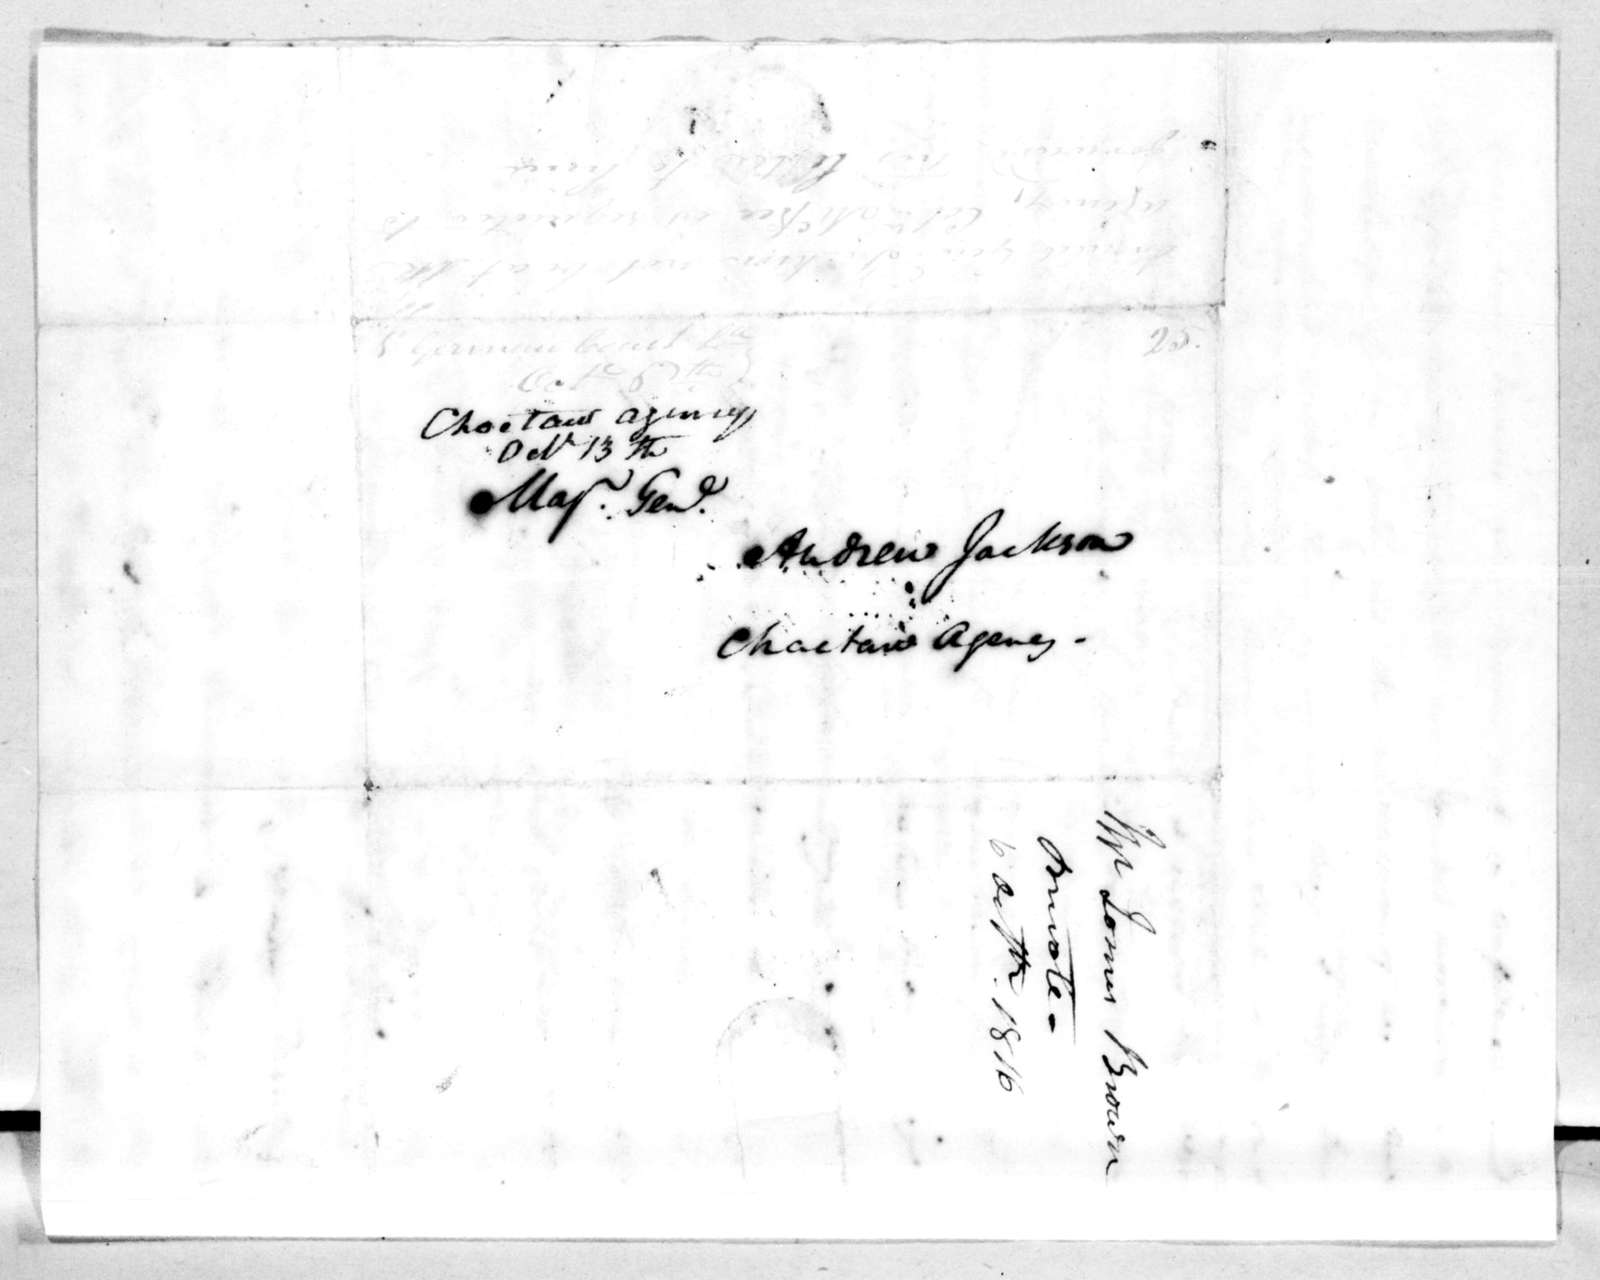 James Brown to Andrew Jackson, October 6, 1816